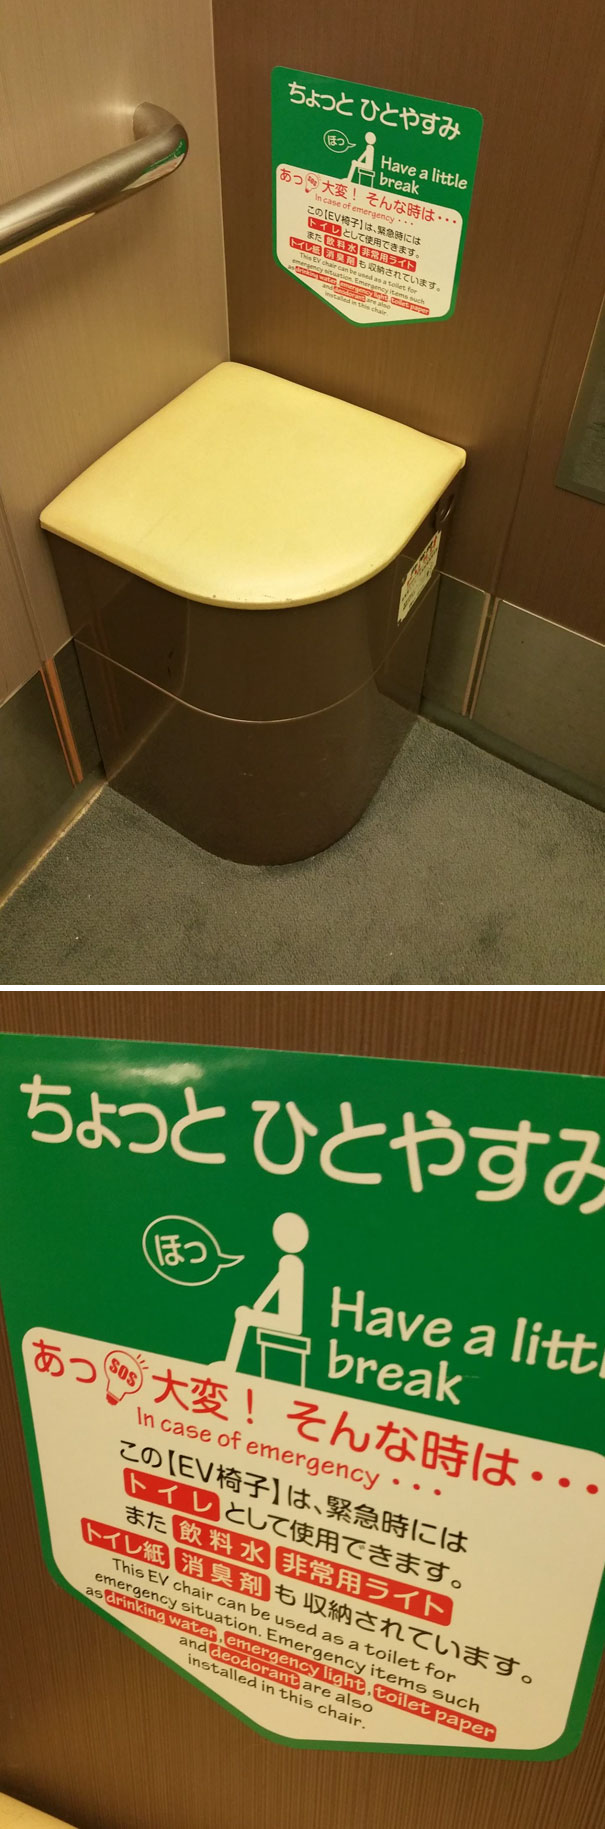 20 Pictures That Would Make You Believe Japan Is A Country Different From Others